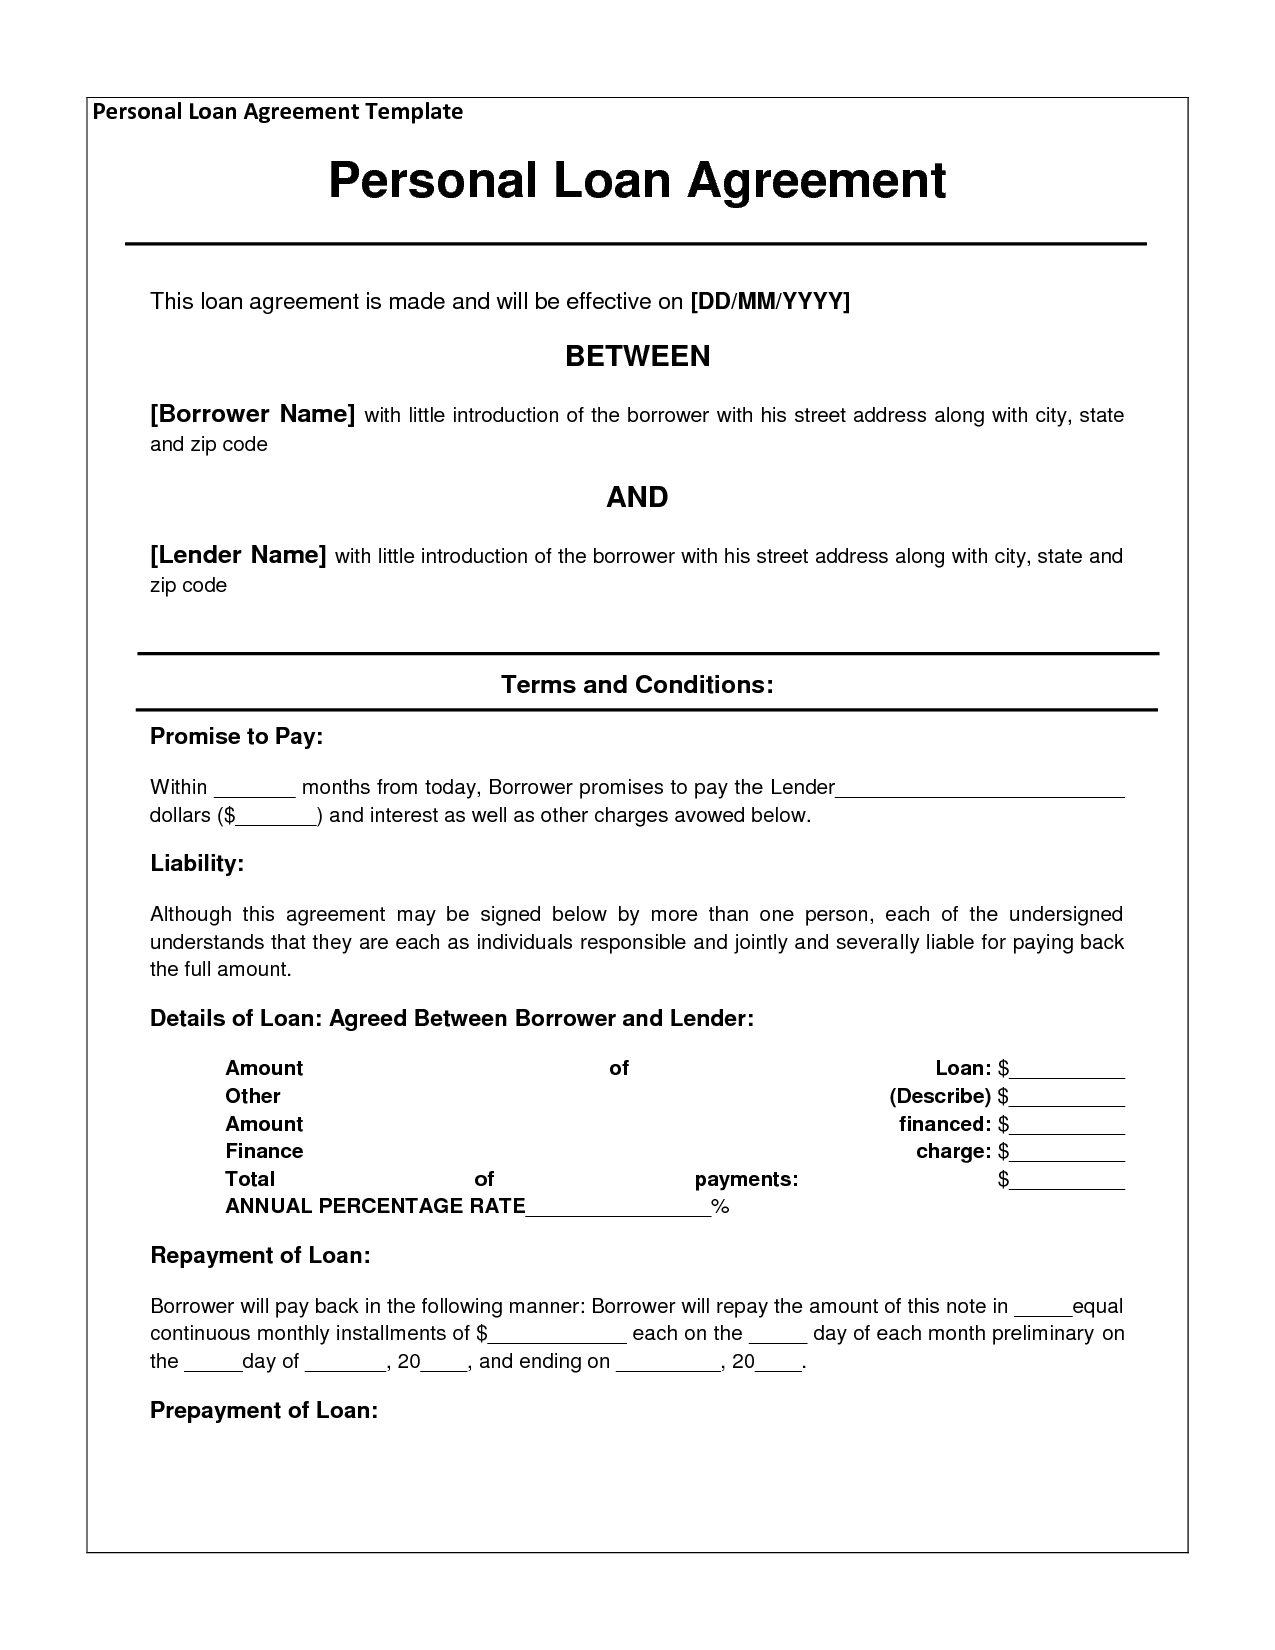 Free personal loan agreement form template 1000 Approved in 2 – Simple Loan Form